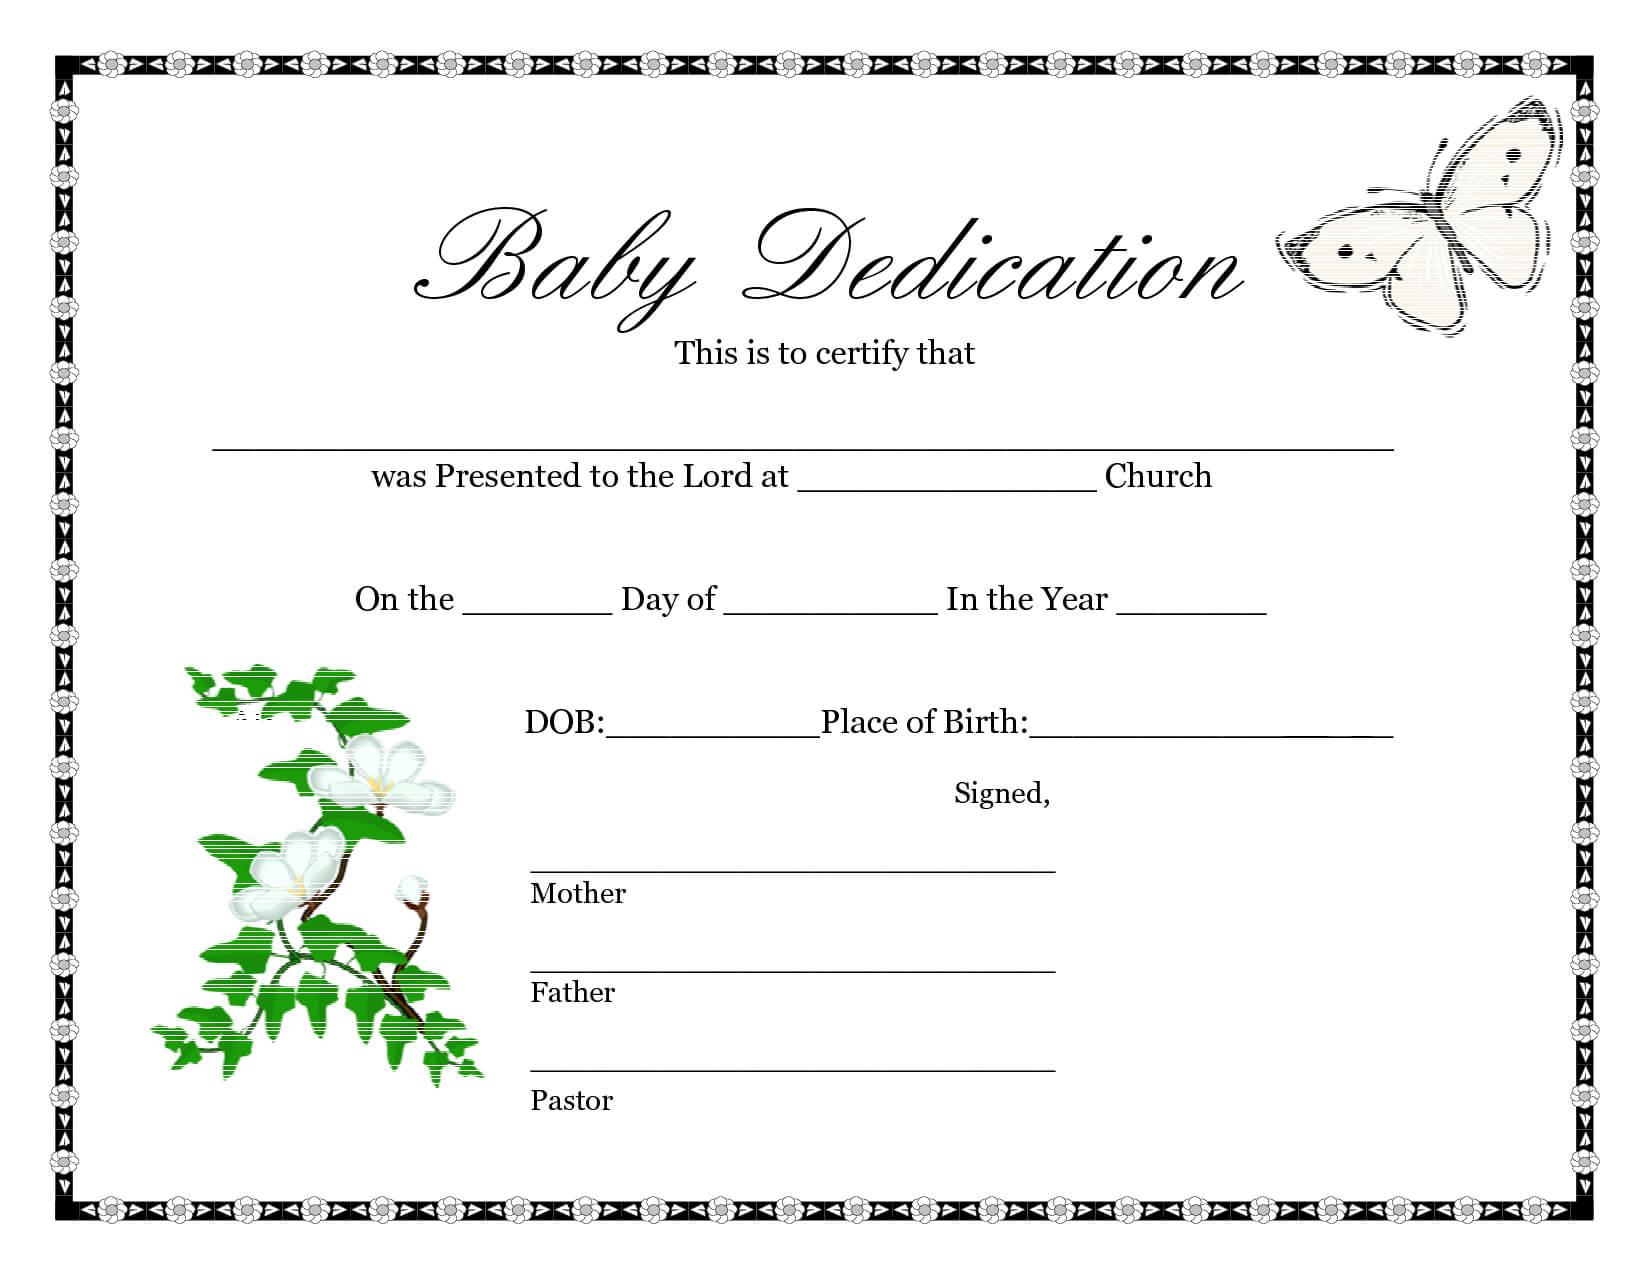 Downloadable Blank Birth Certificate Template Sample : V M D Throughout Birth Certificate Fake Template